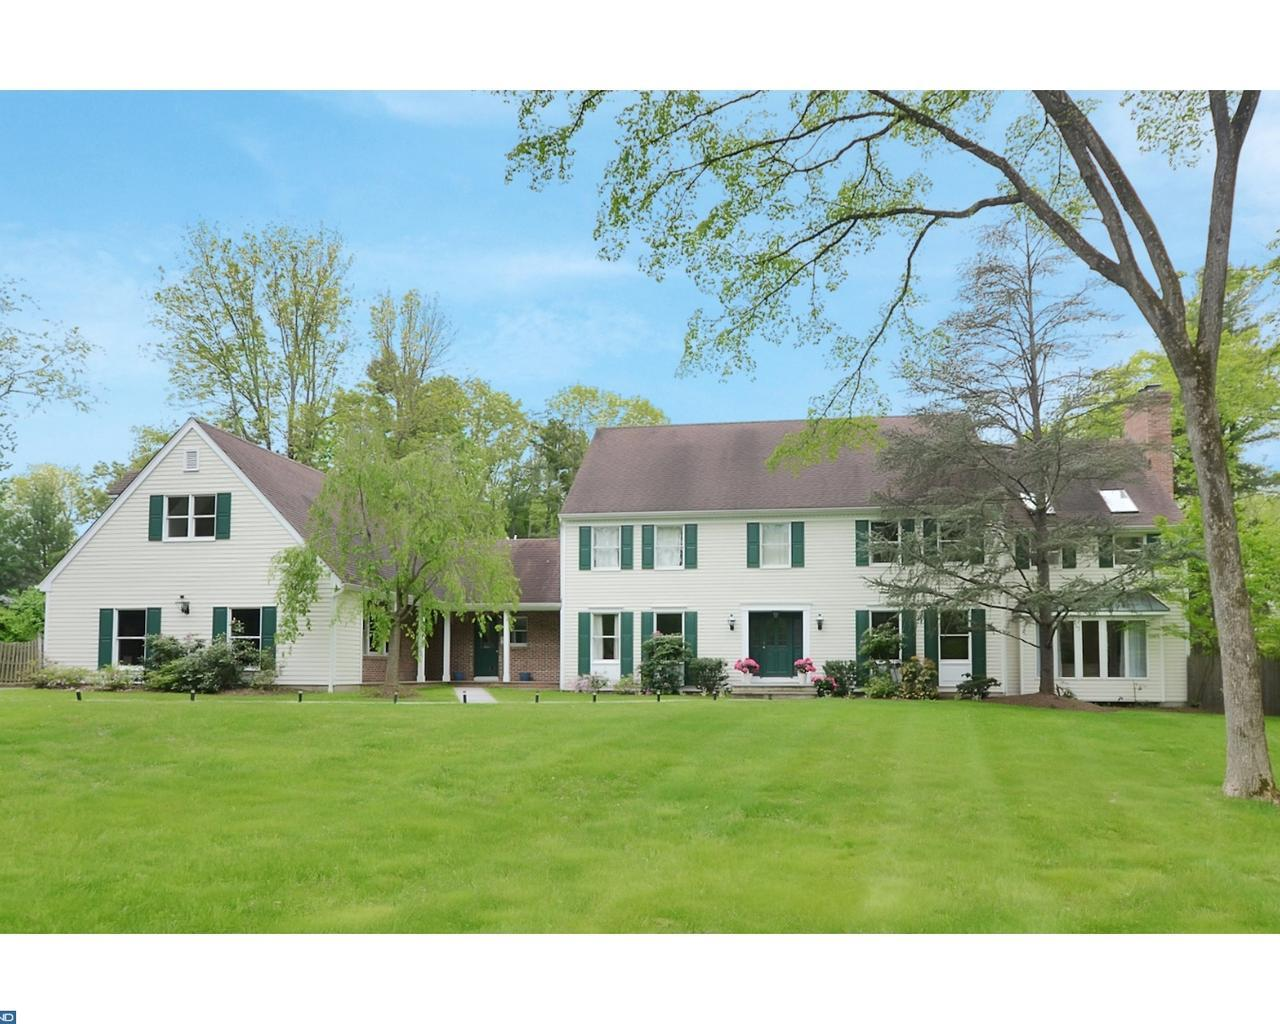 102 Cherry Hill Road, Princeton, NJ 08540